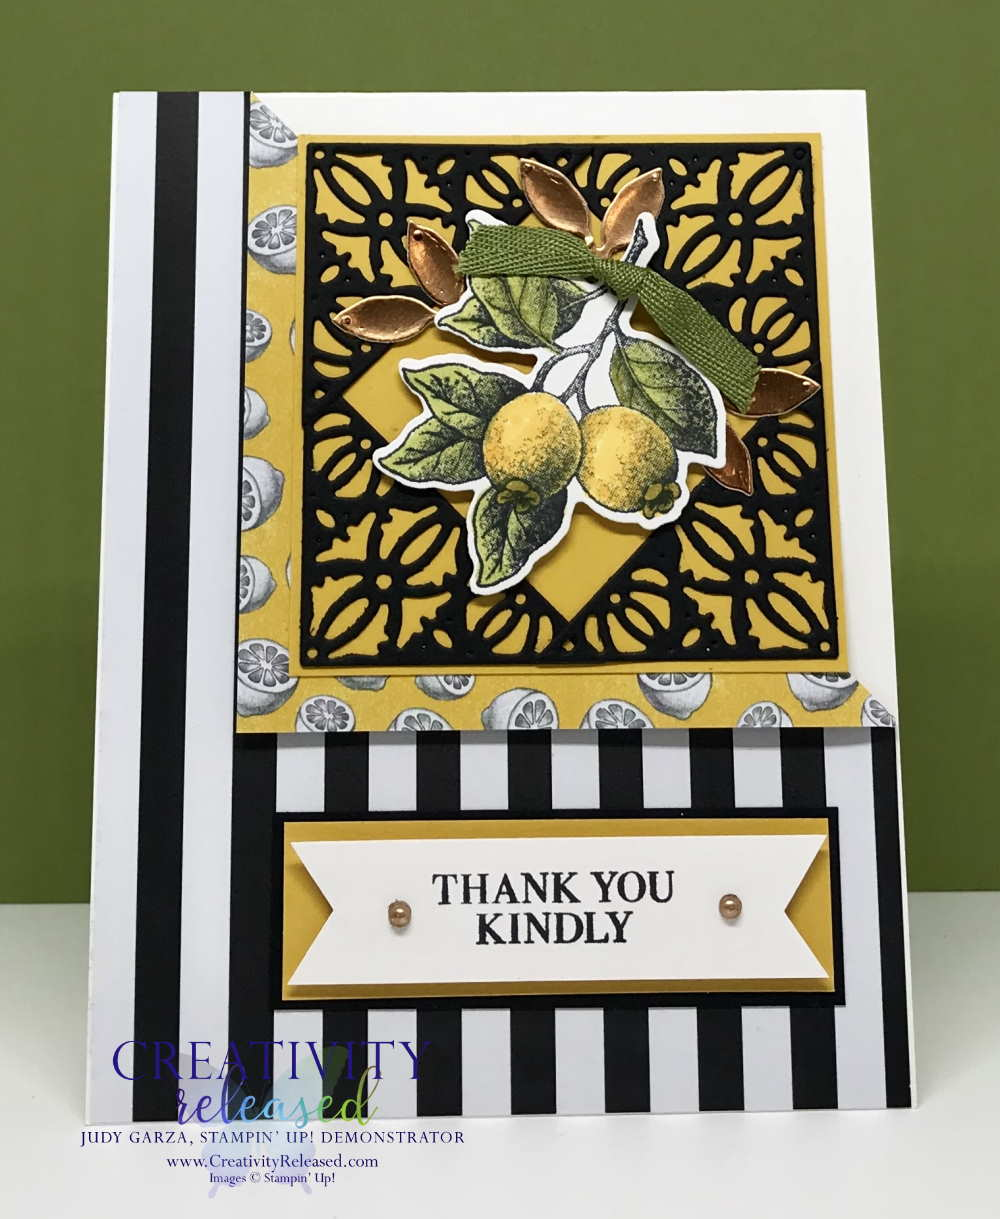 A lemony thank-you card using the Botanical Prints Medley by Stampin' Up!